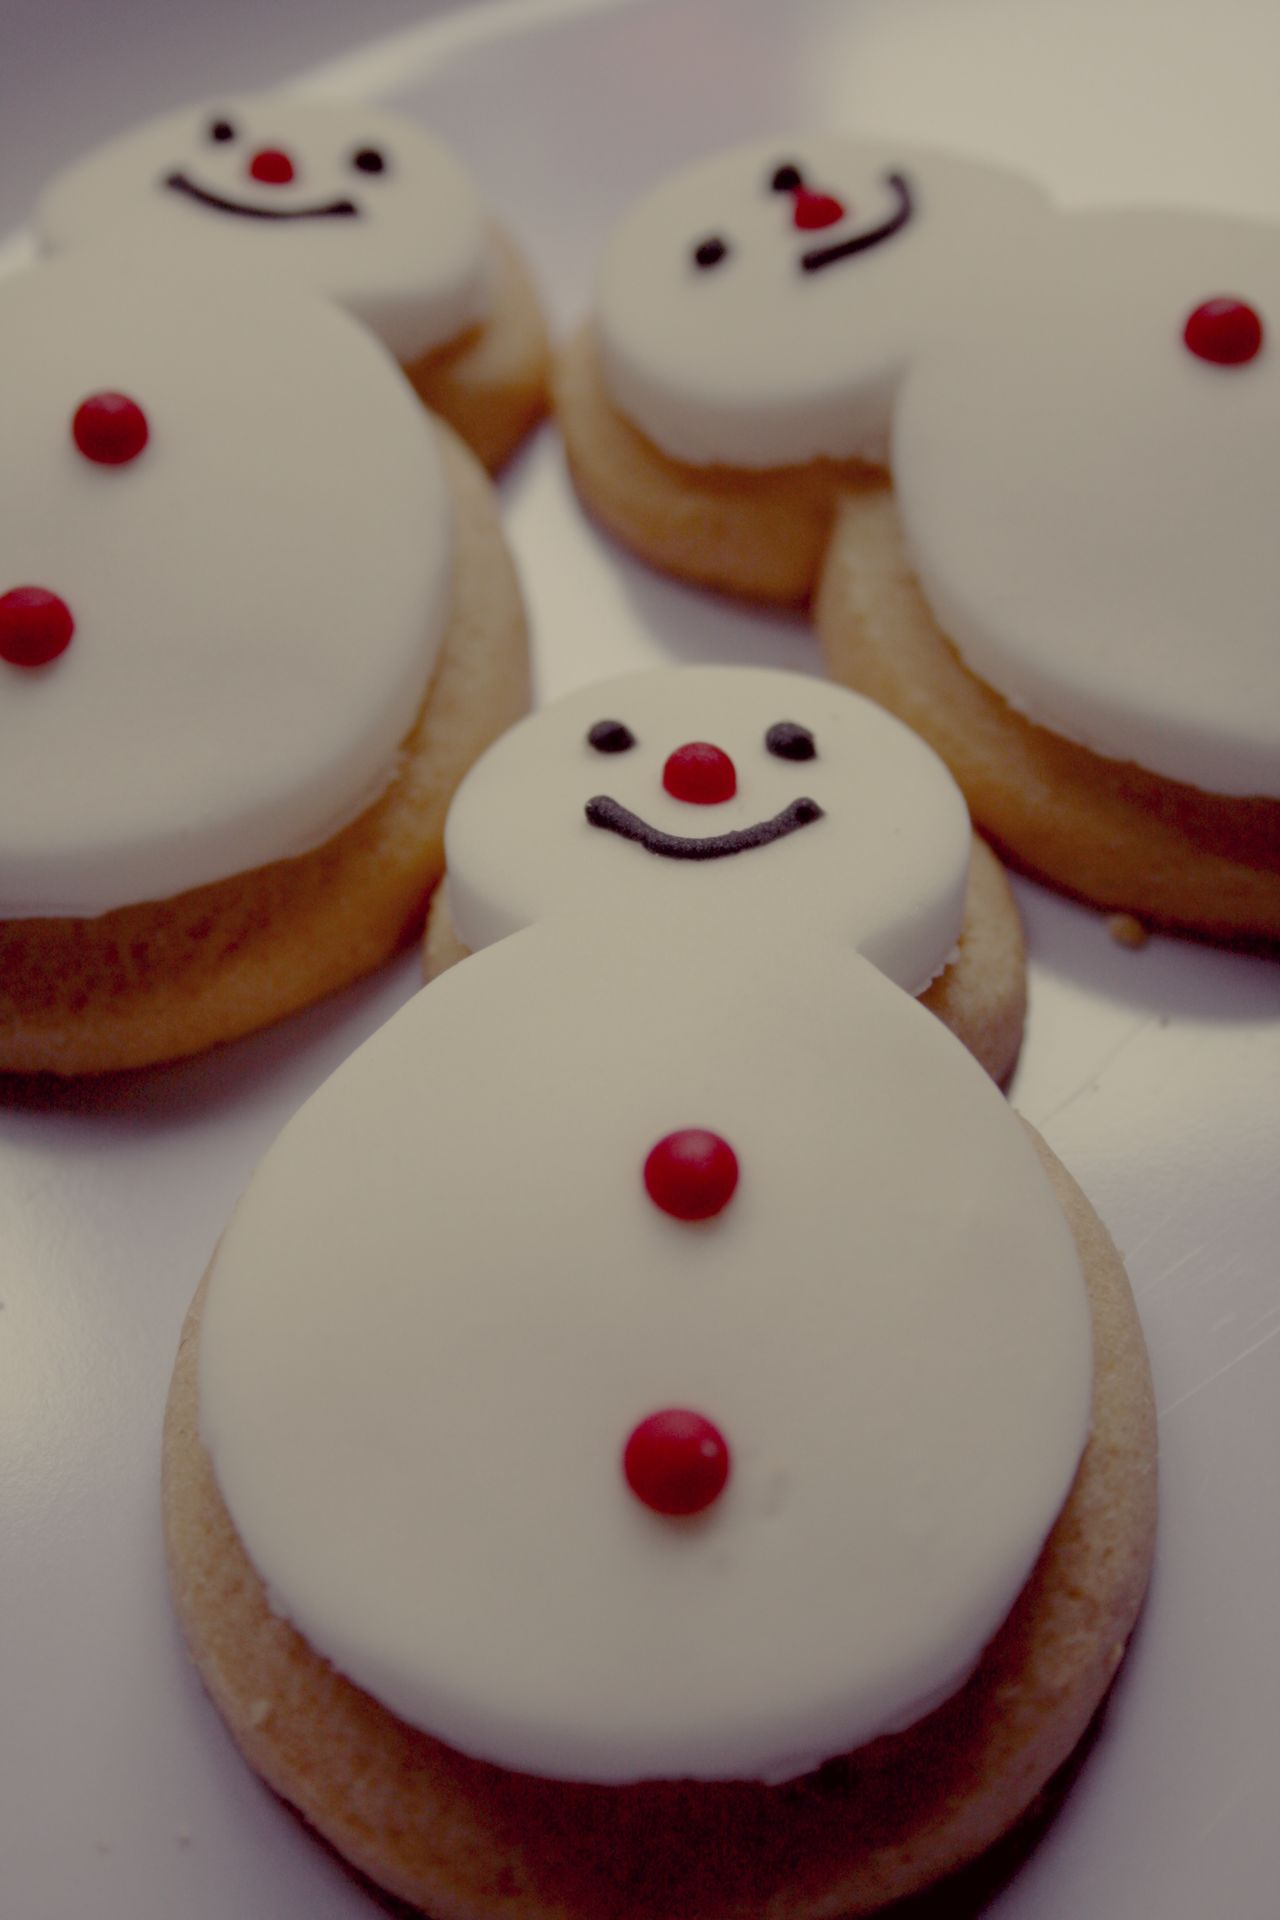 Anthropomorphic Face Anthropomorphic Smiley Face Backgrounds Biscuits Christmas Christmas Food Close-up Cultures Day Food Gourmet High Angle View Indoors  No People Ready-to-eat Smiley Face Snowman Snowman⛄ Snowmen Vintage Style